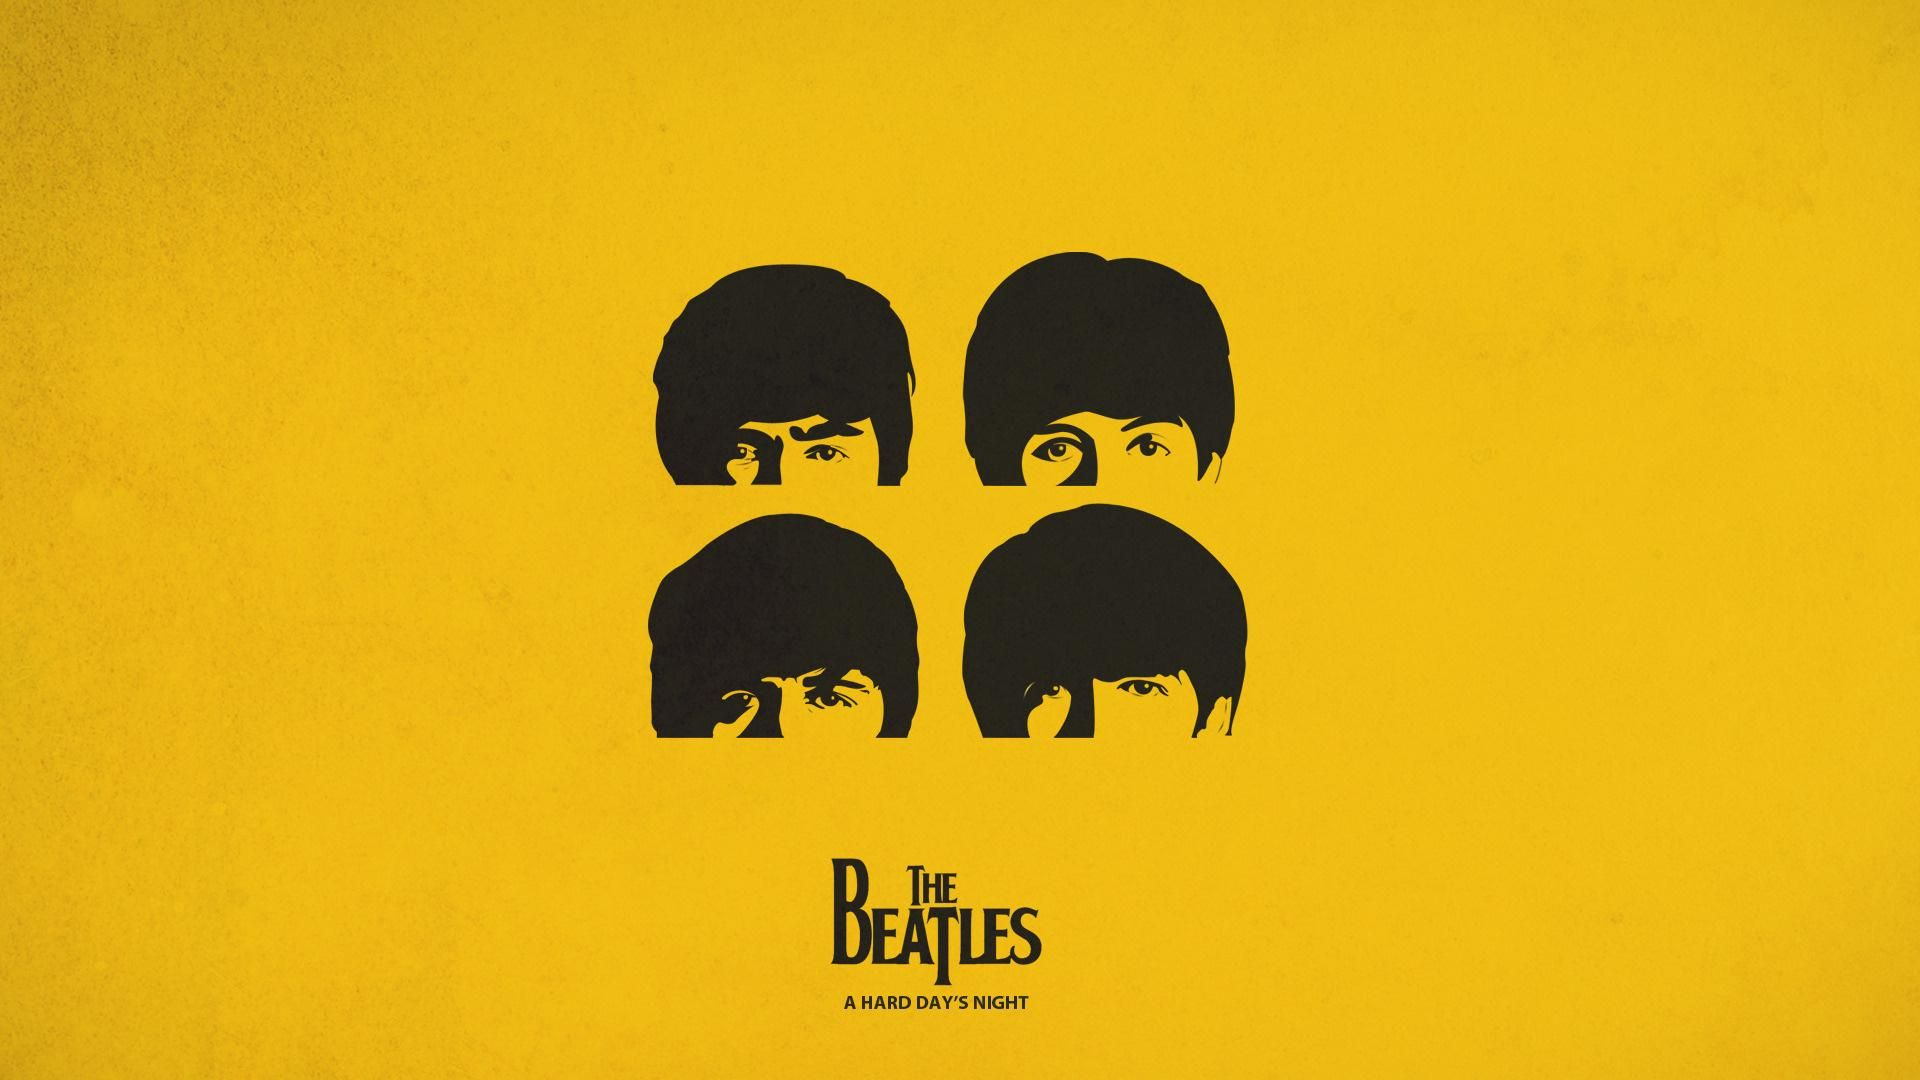 The Beatles Logo Background HD Wallpaper Illustration